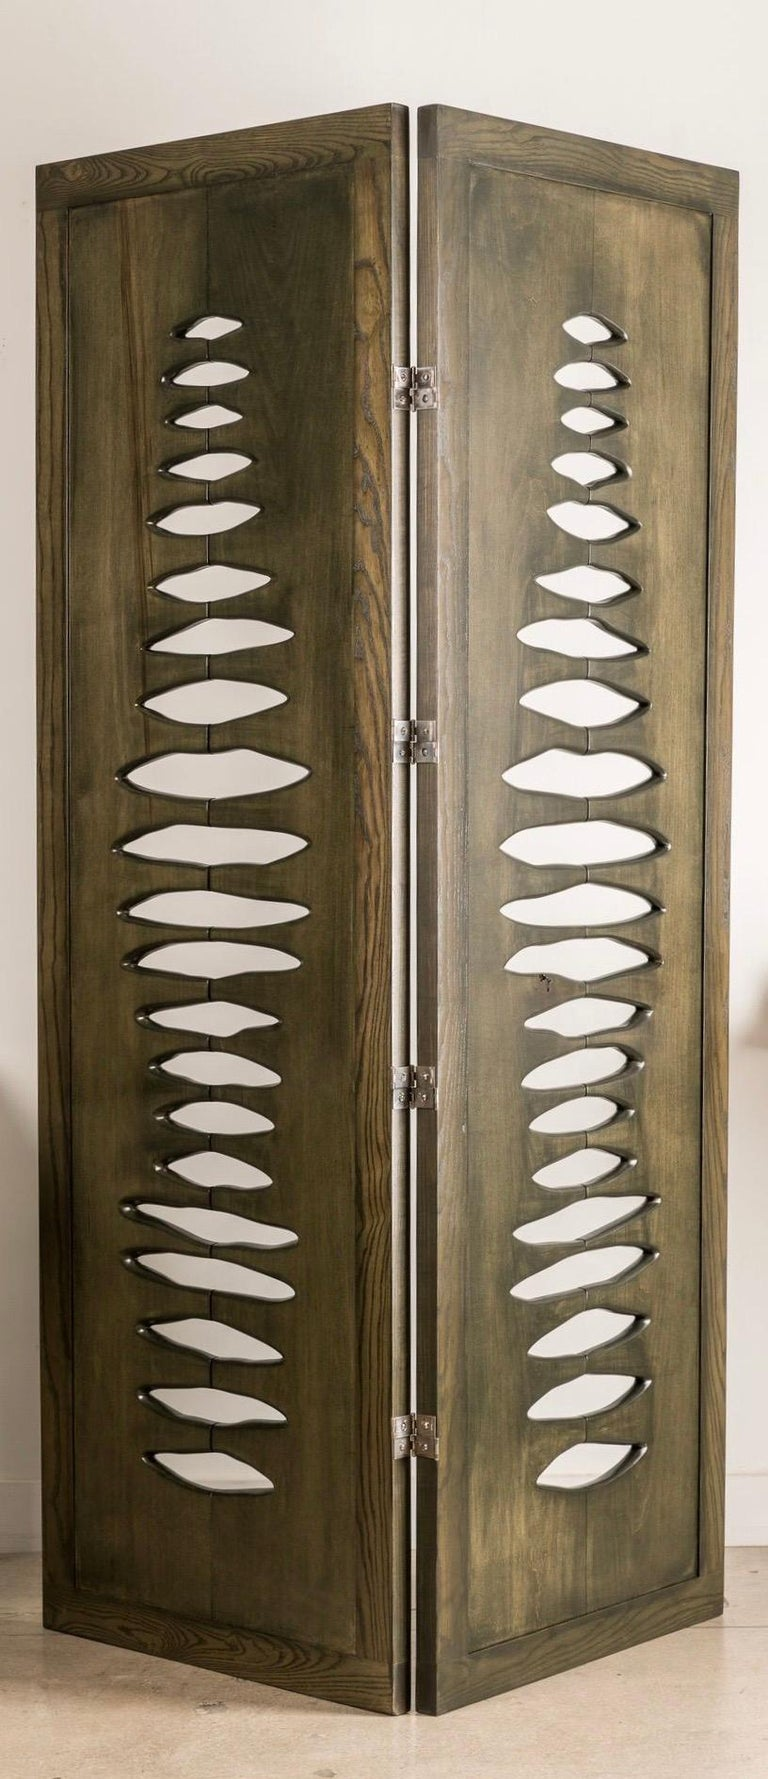 'Navajo' Sculptural Screen Space Divider in Solid Wood by Vivian Carbonell For Sale 2